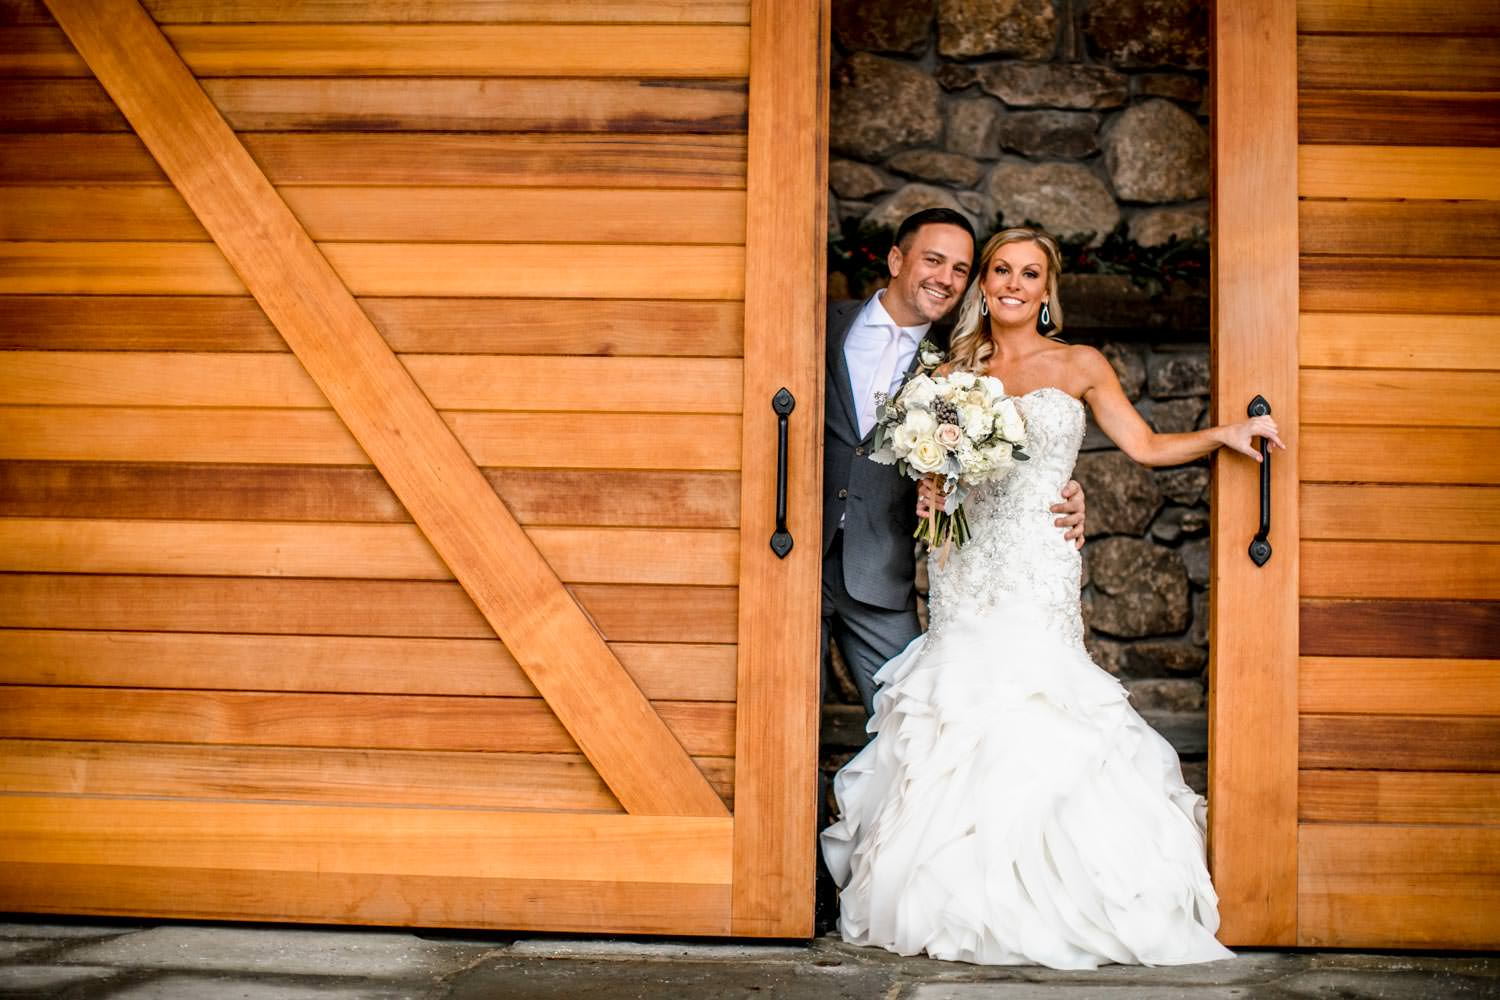 bride and groom pose for wedding photographer in doorway by ice rink at Stowe Mountain Lodge